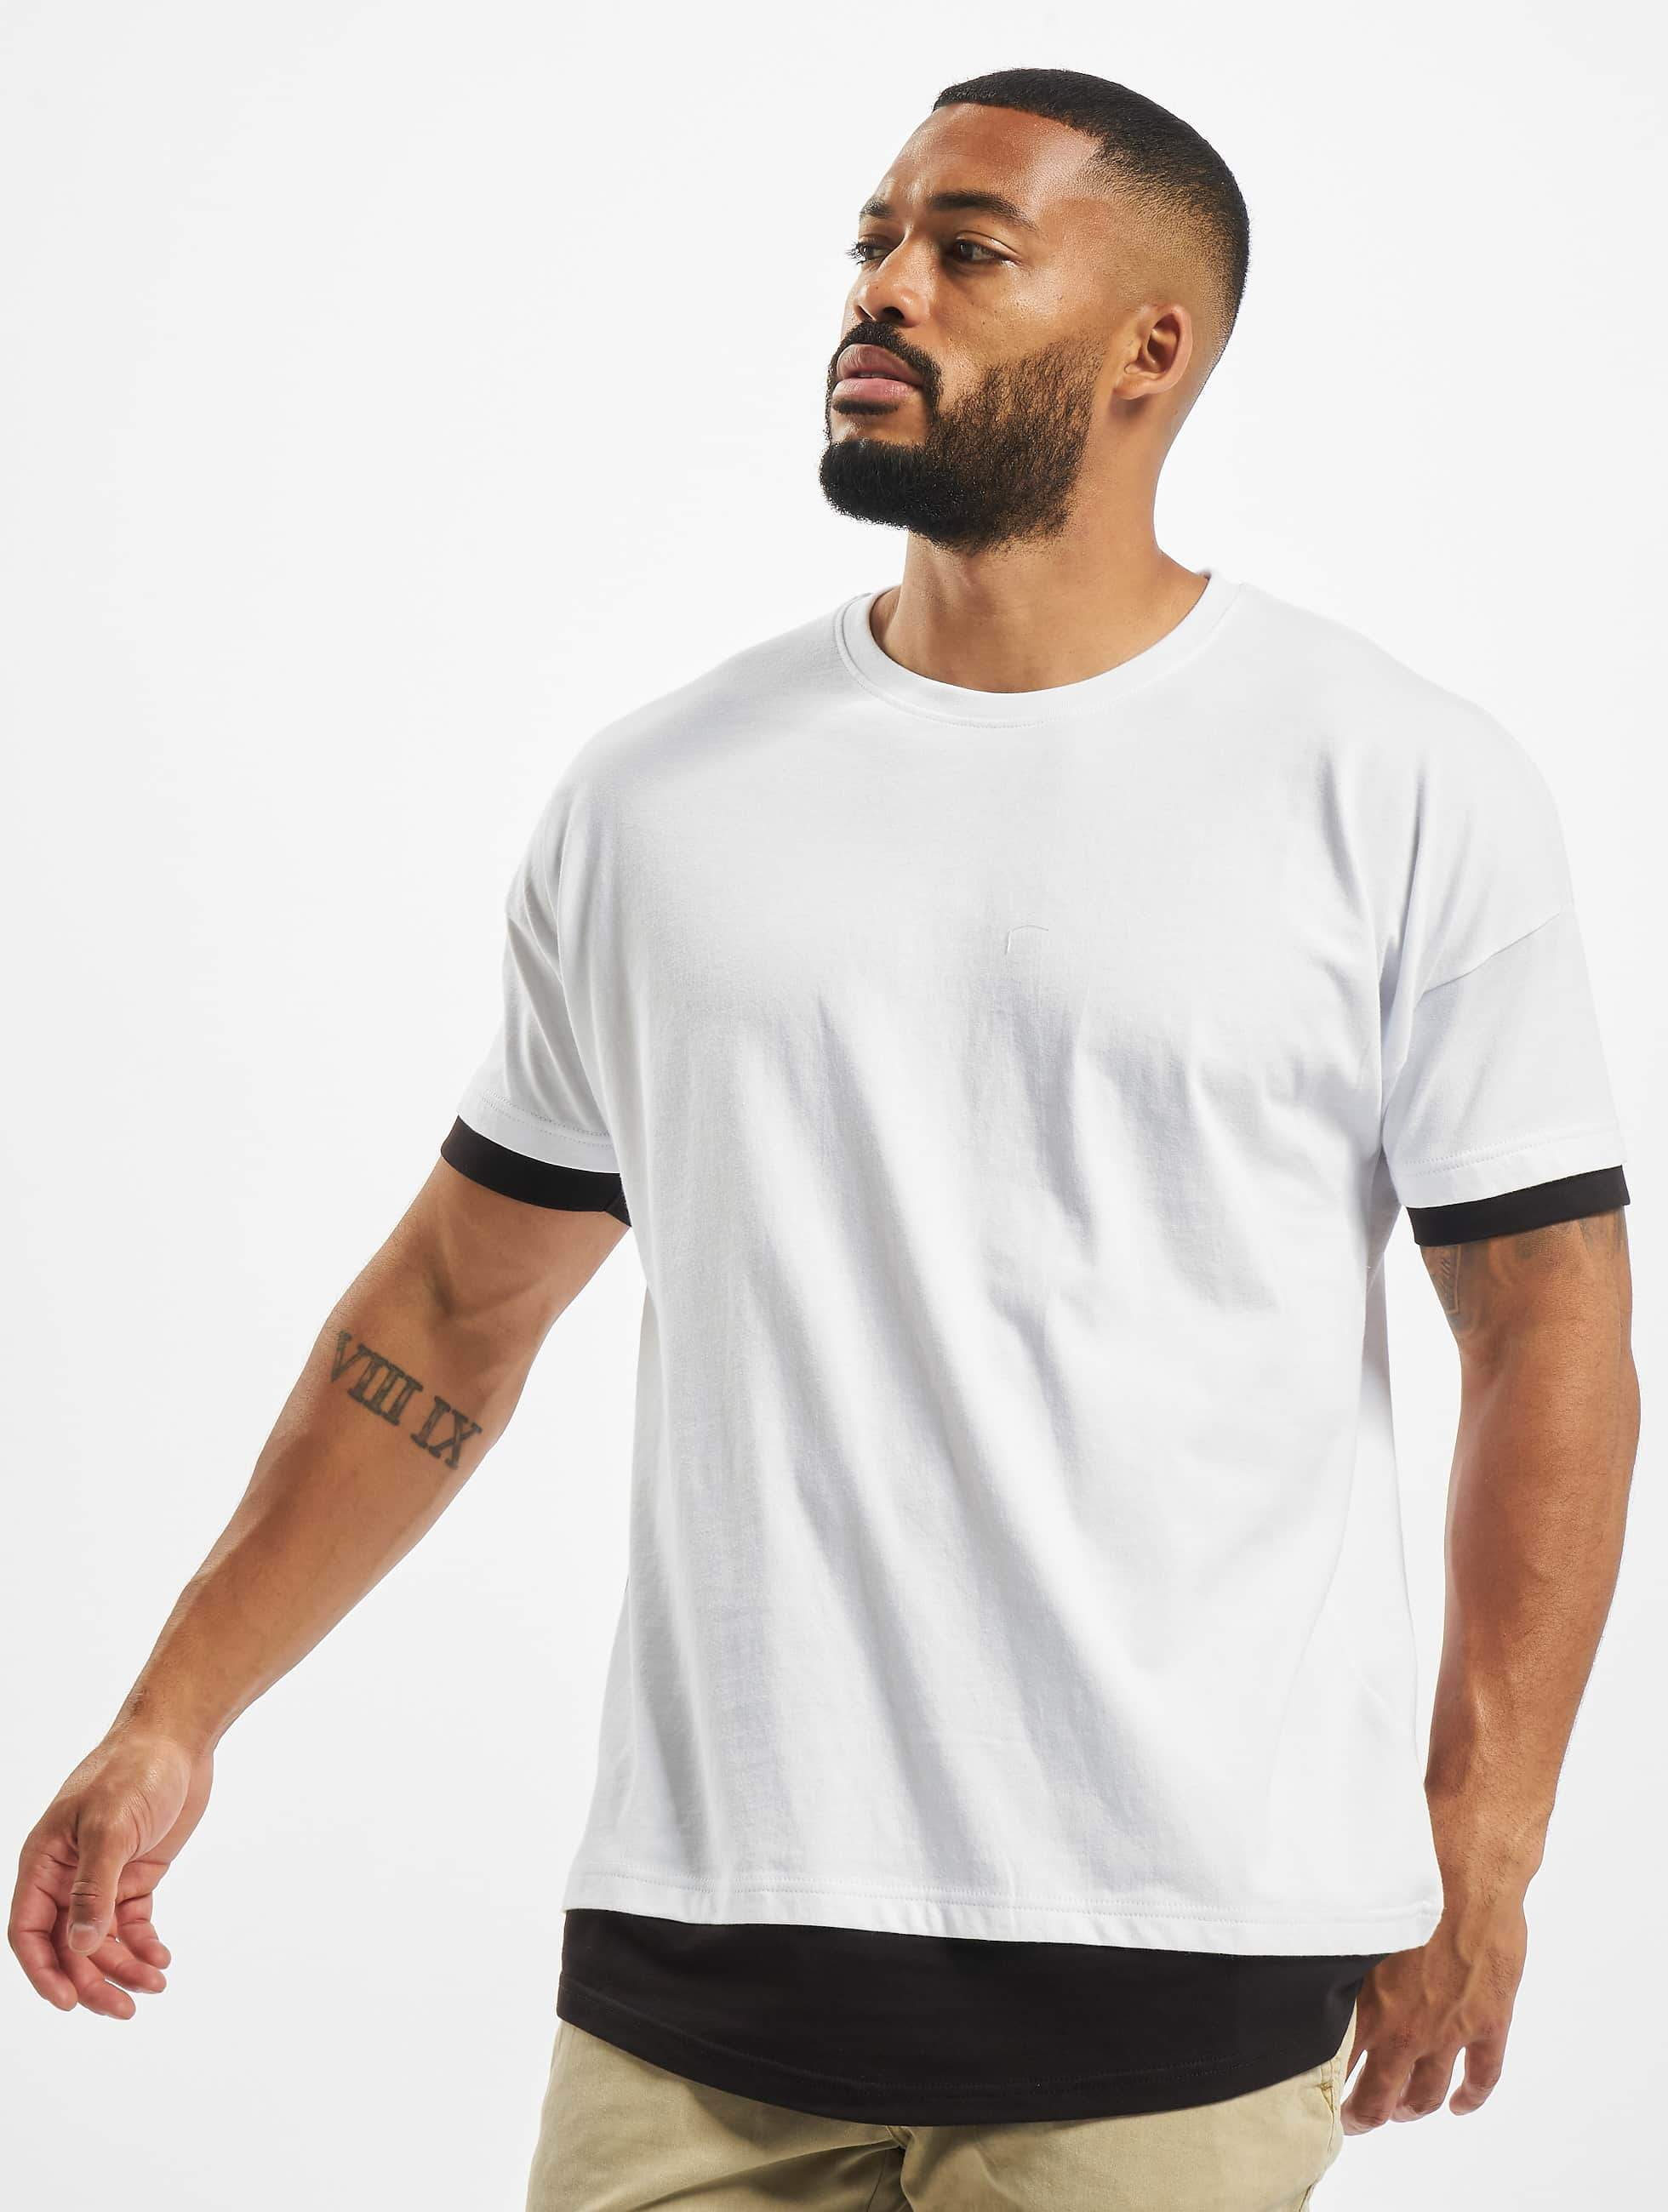 DEF / T-Shirt Tyle in white XL